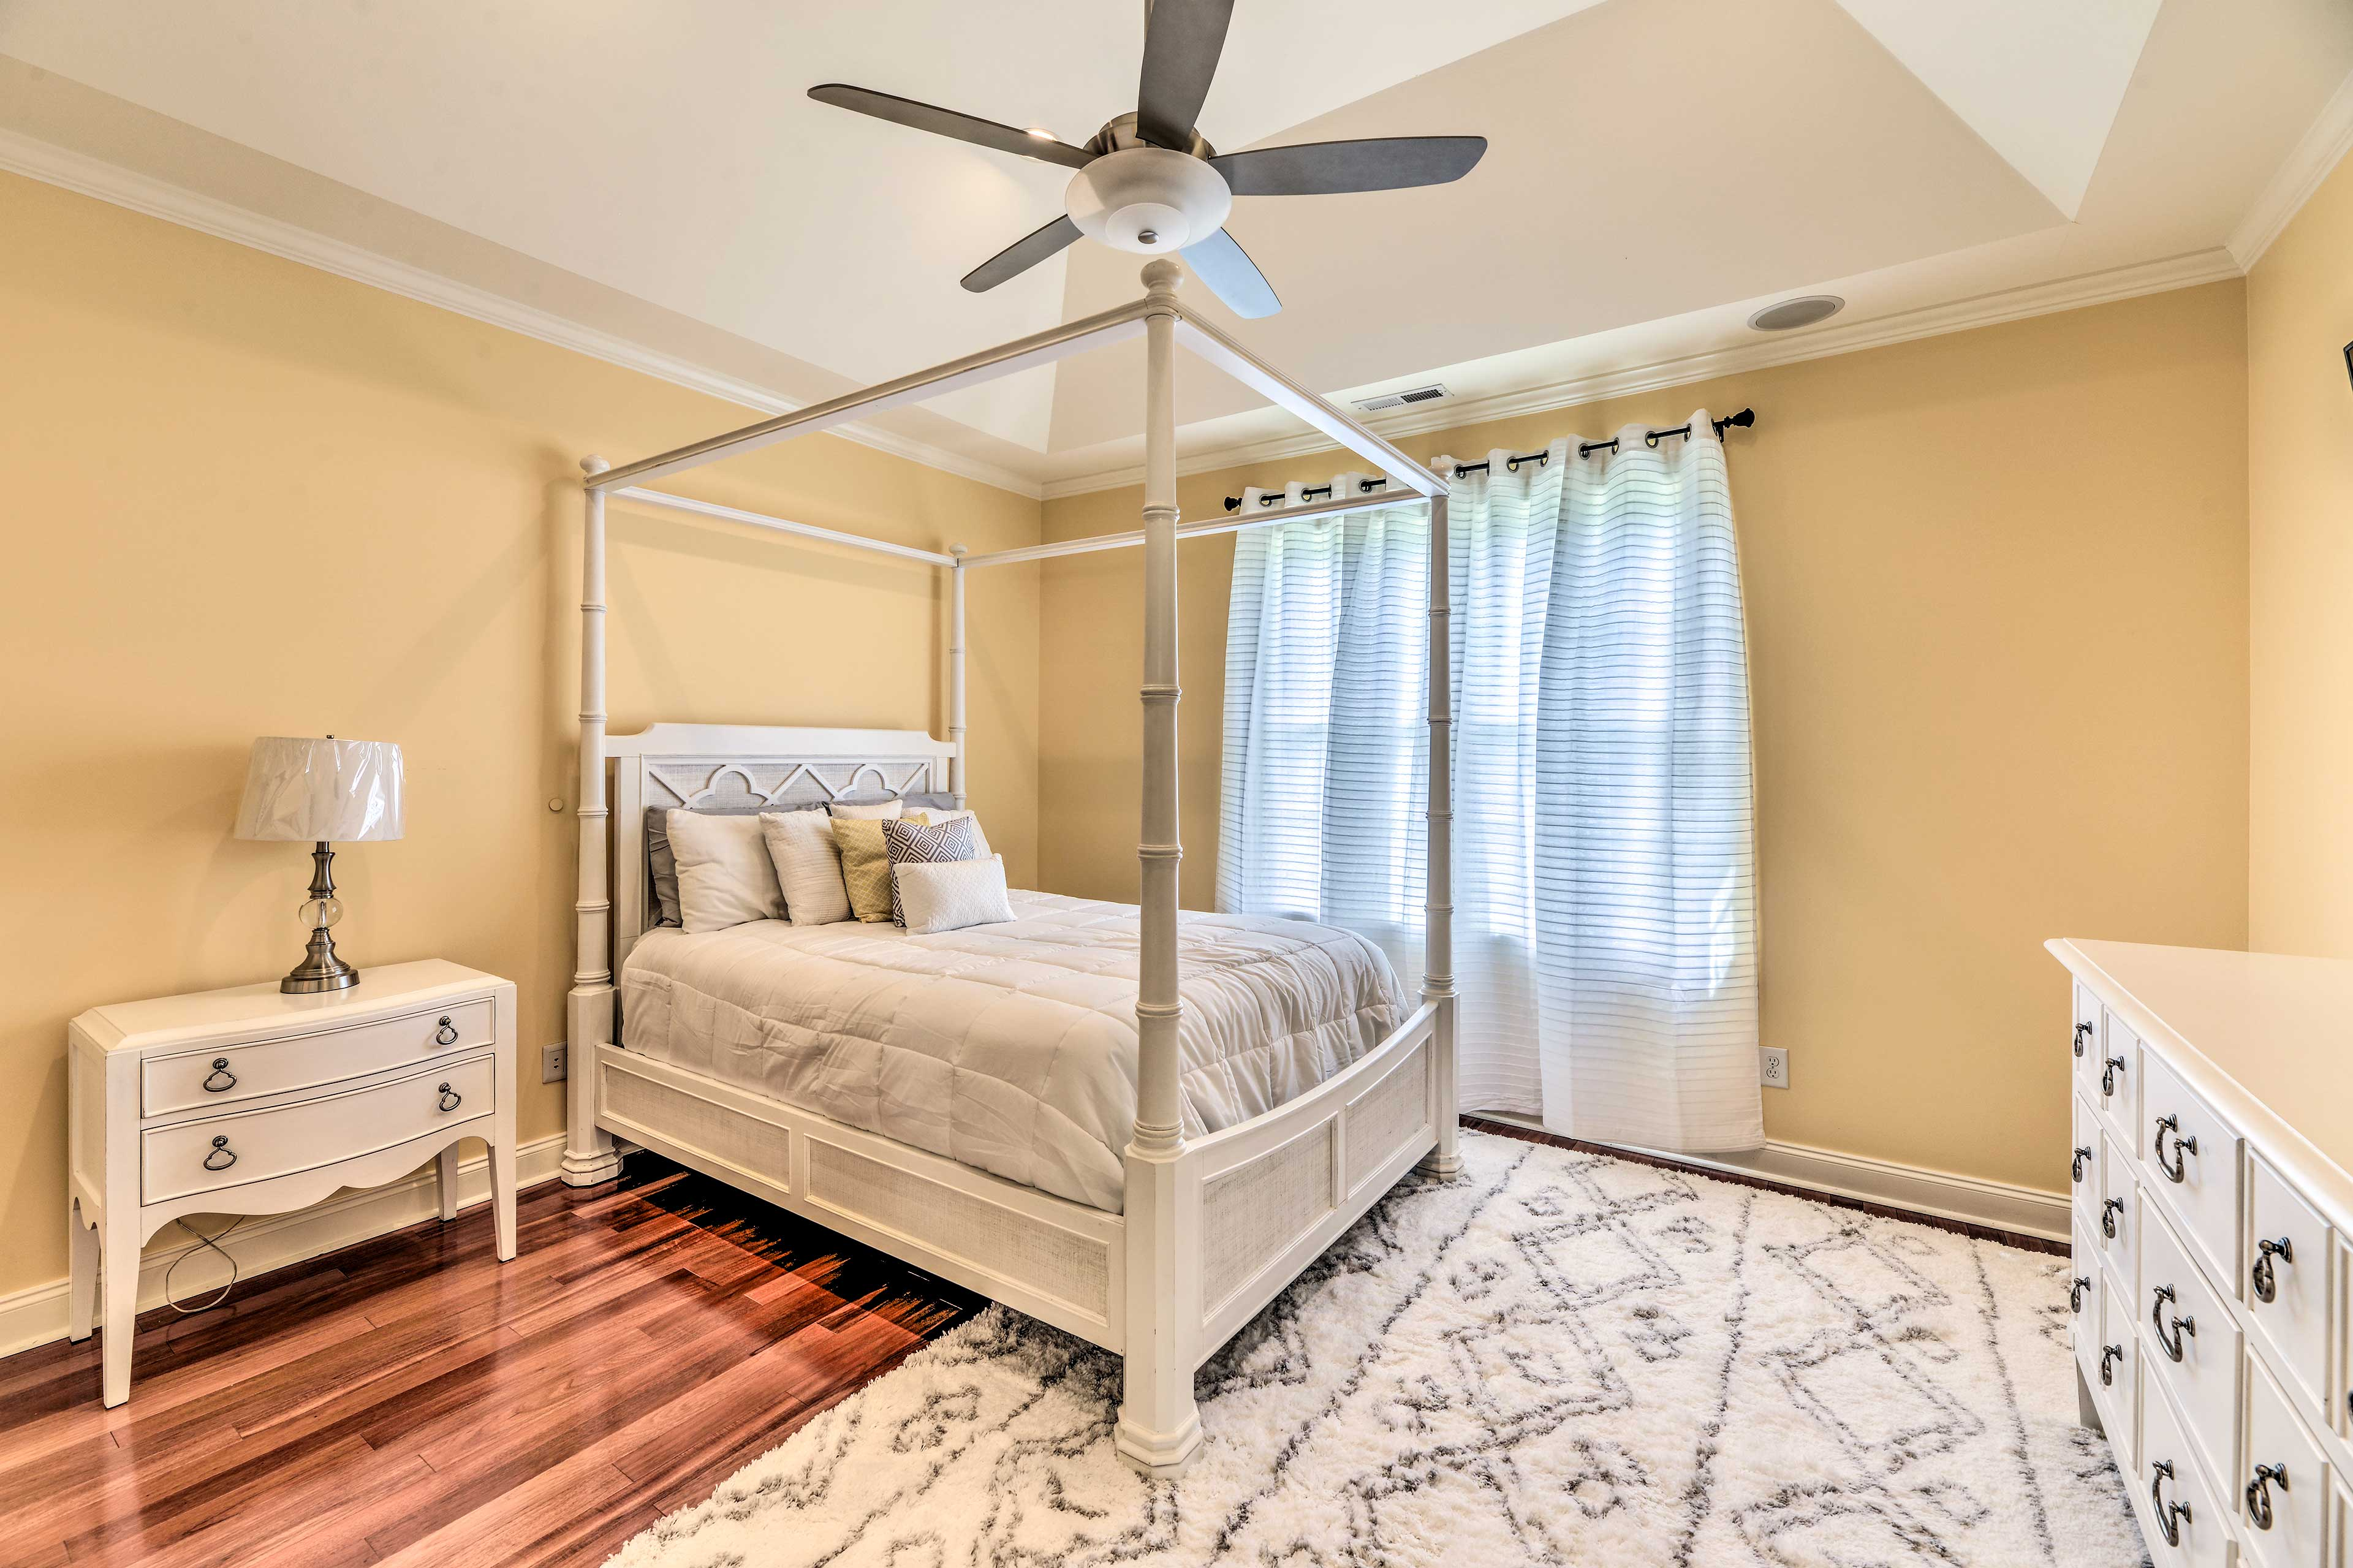 Two people will sleep soundly in this 4-posted queen bed.